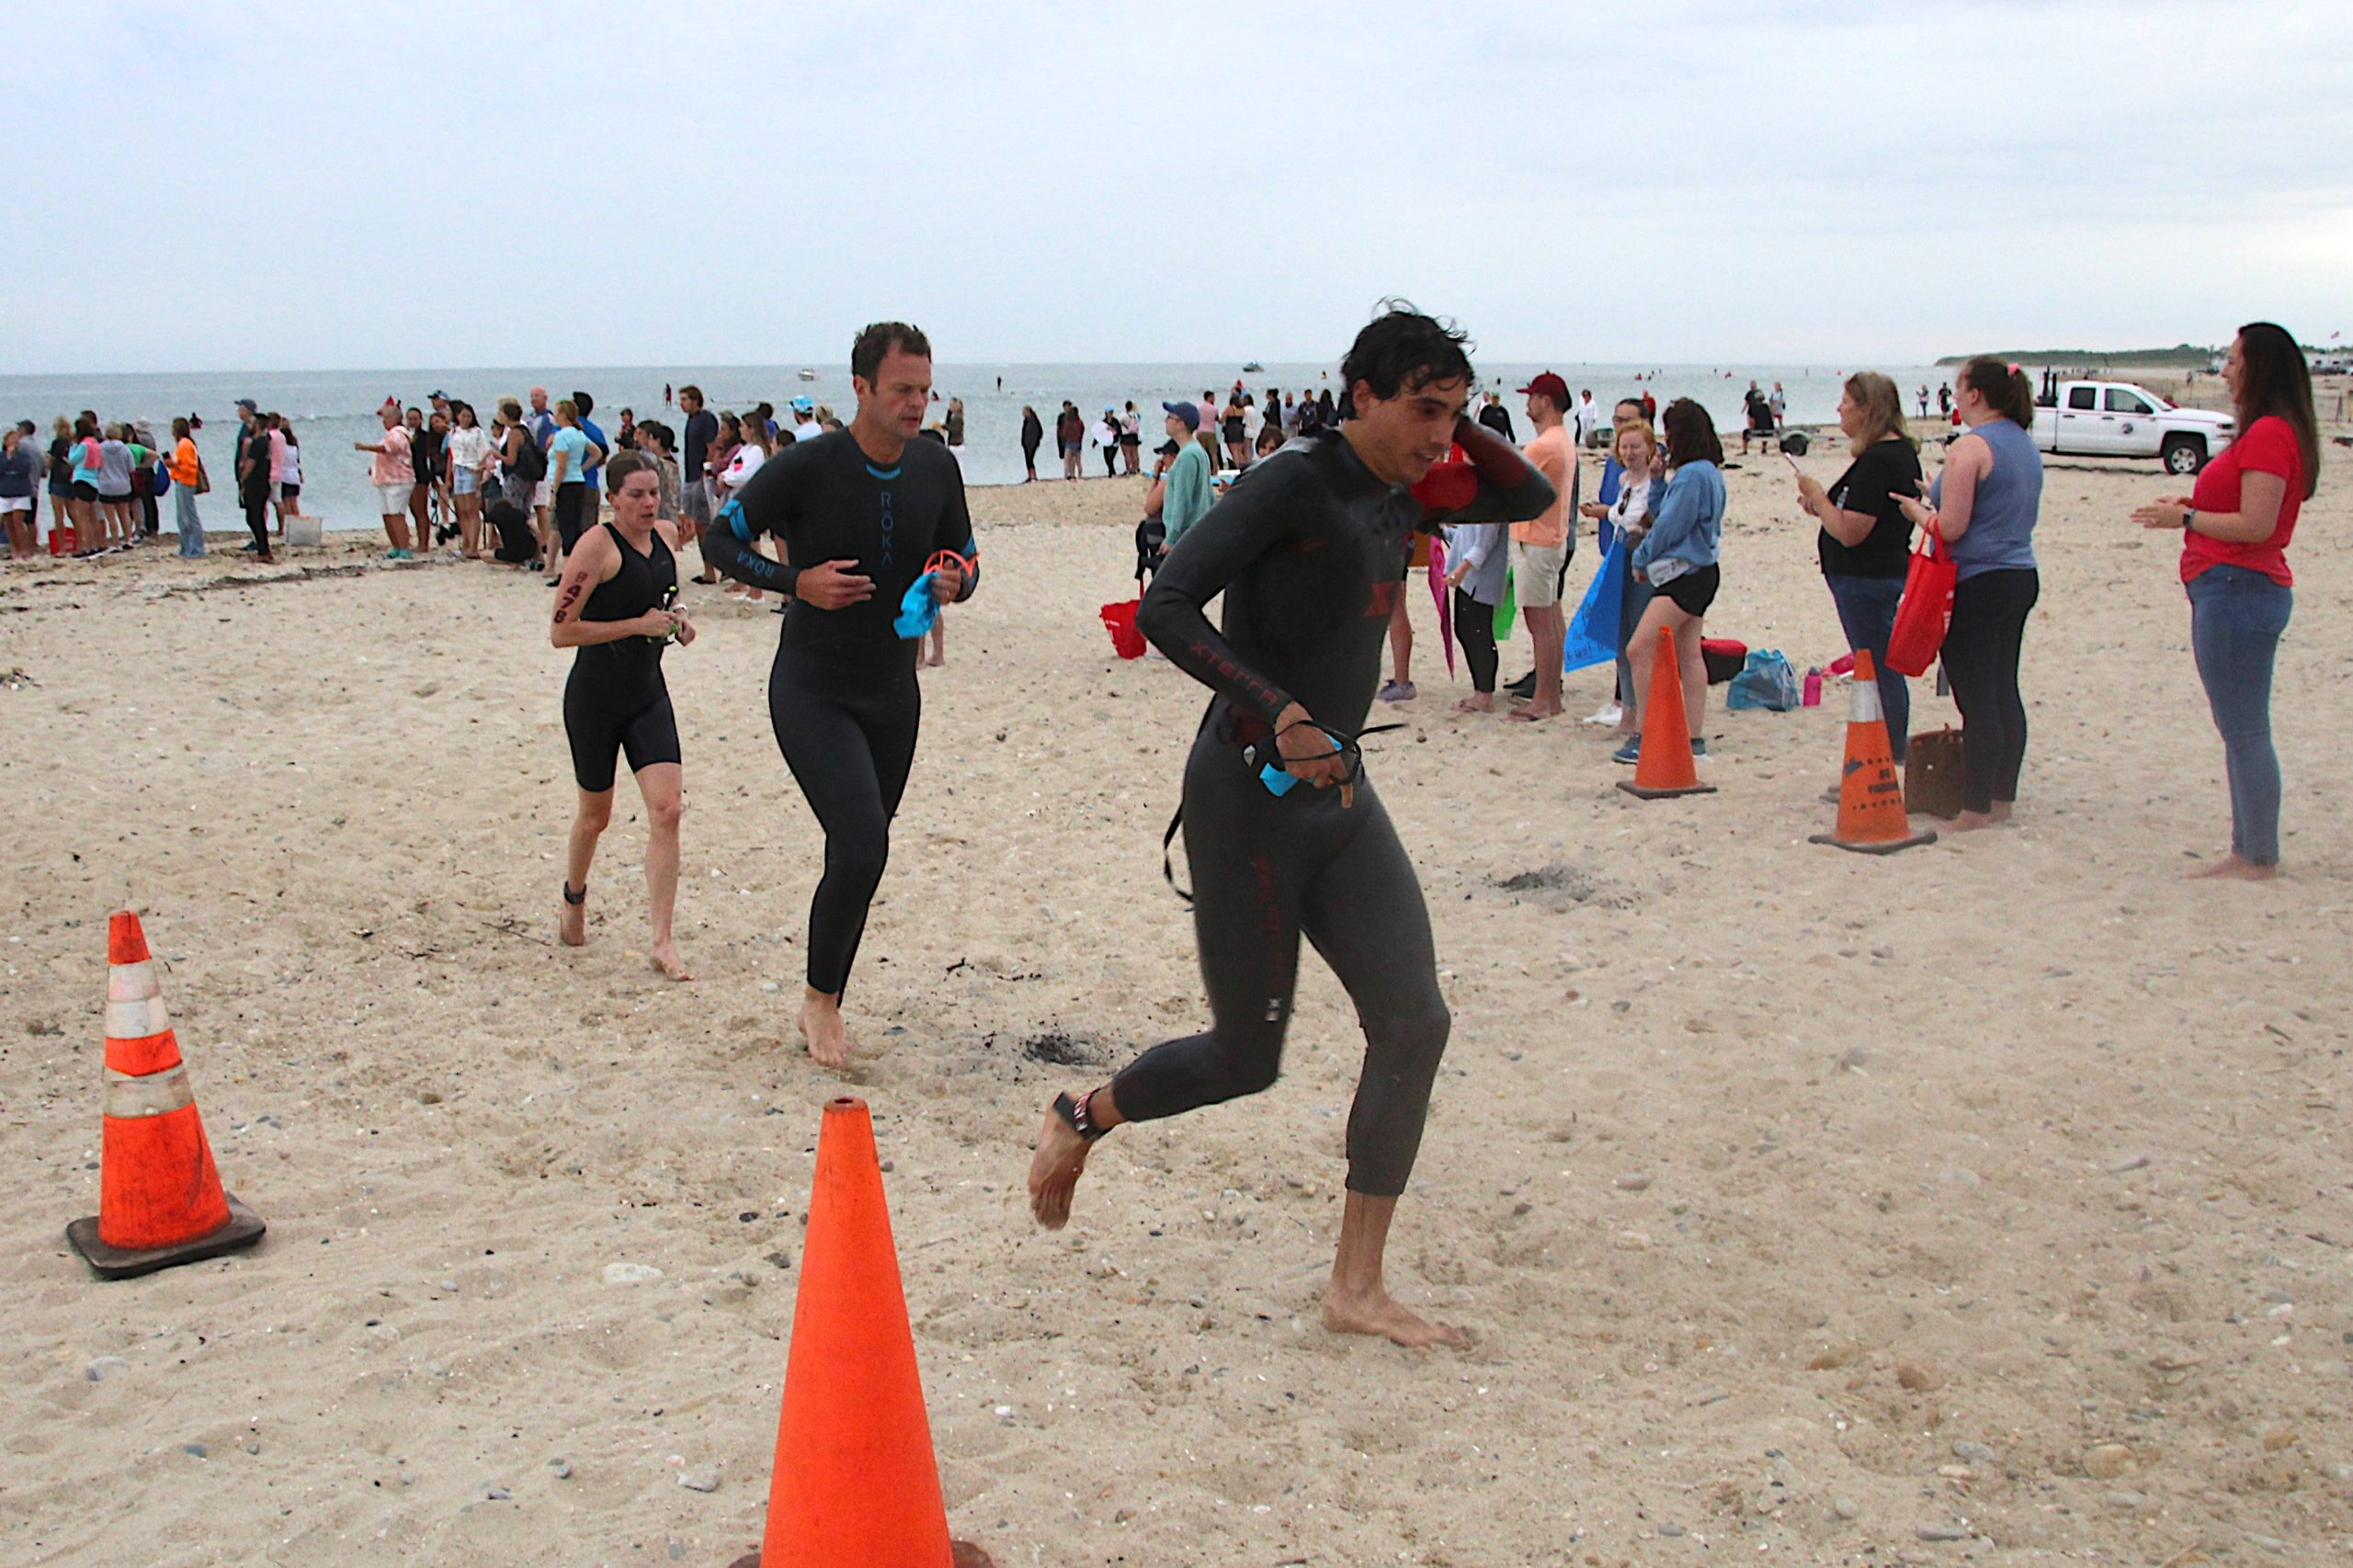 Triathletes gets out of the water and head toward their bikes to start the cycling portion of the race.